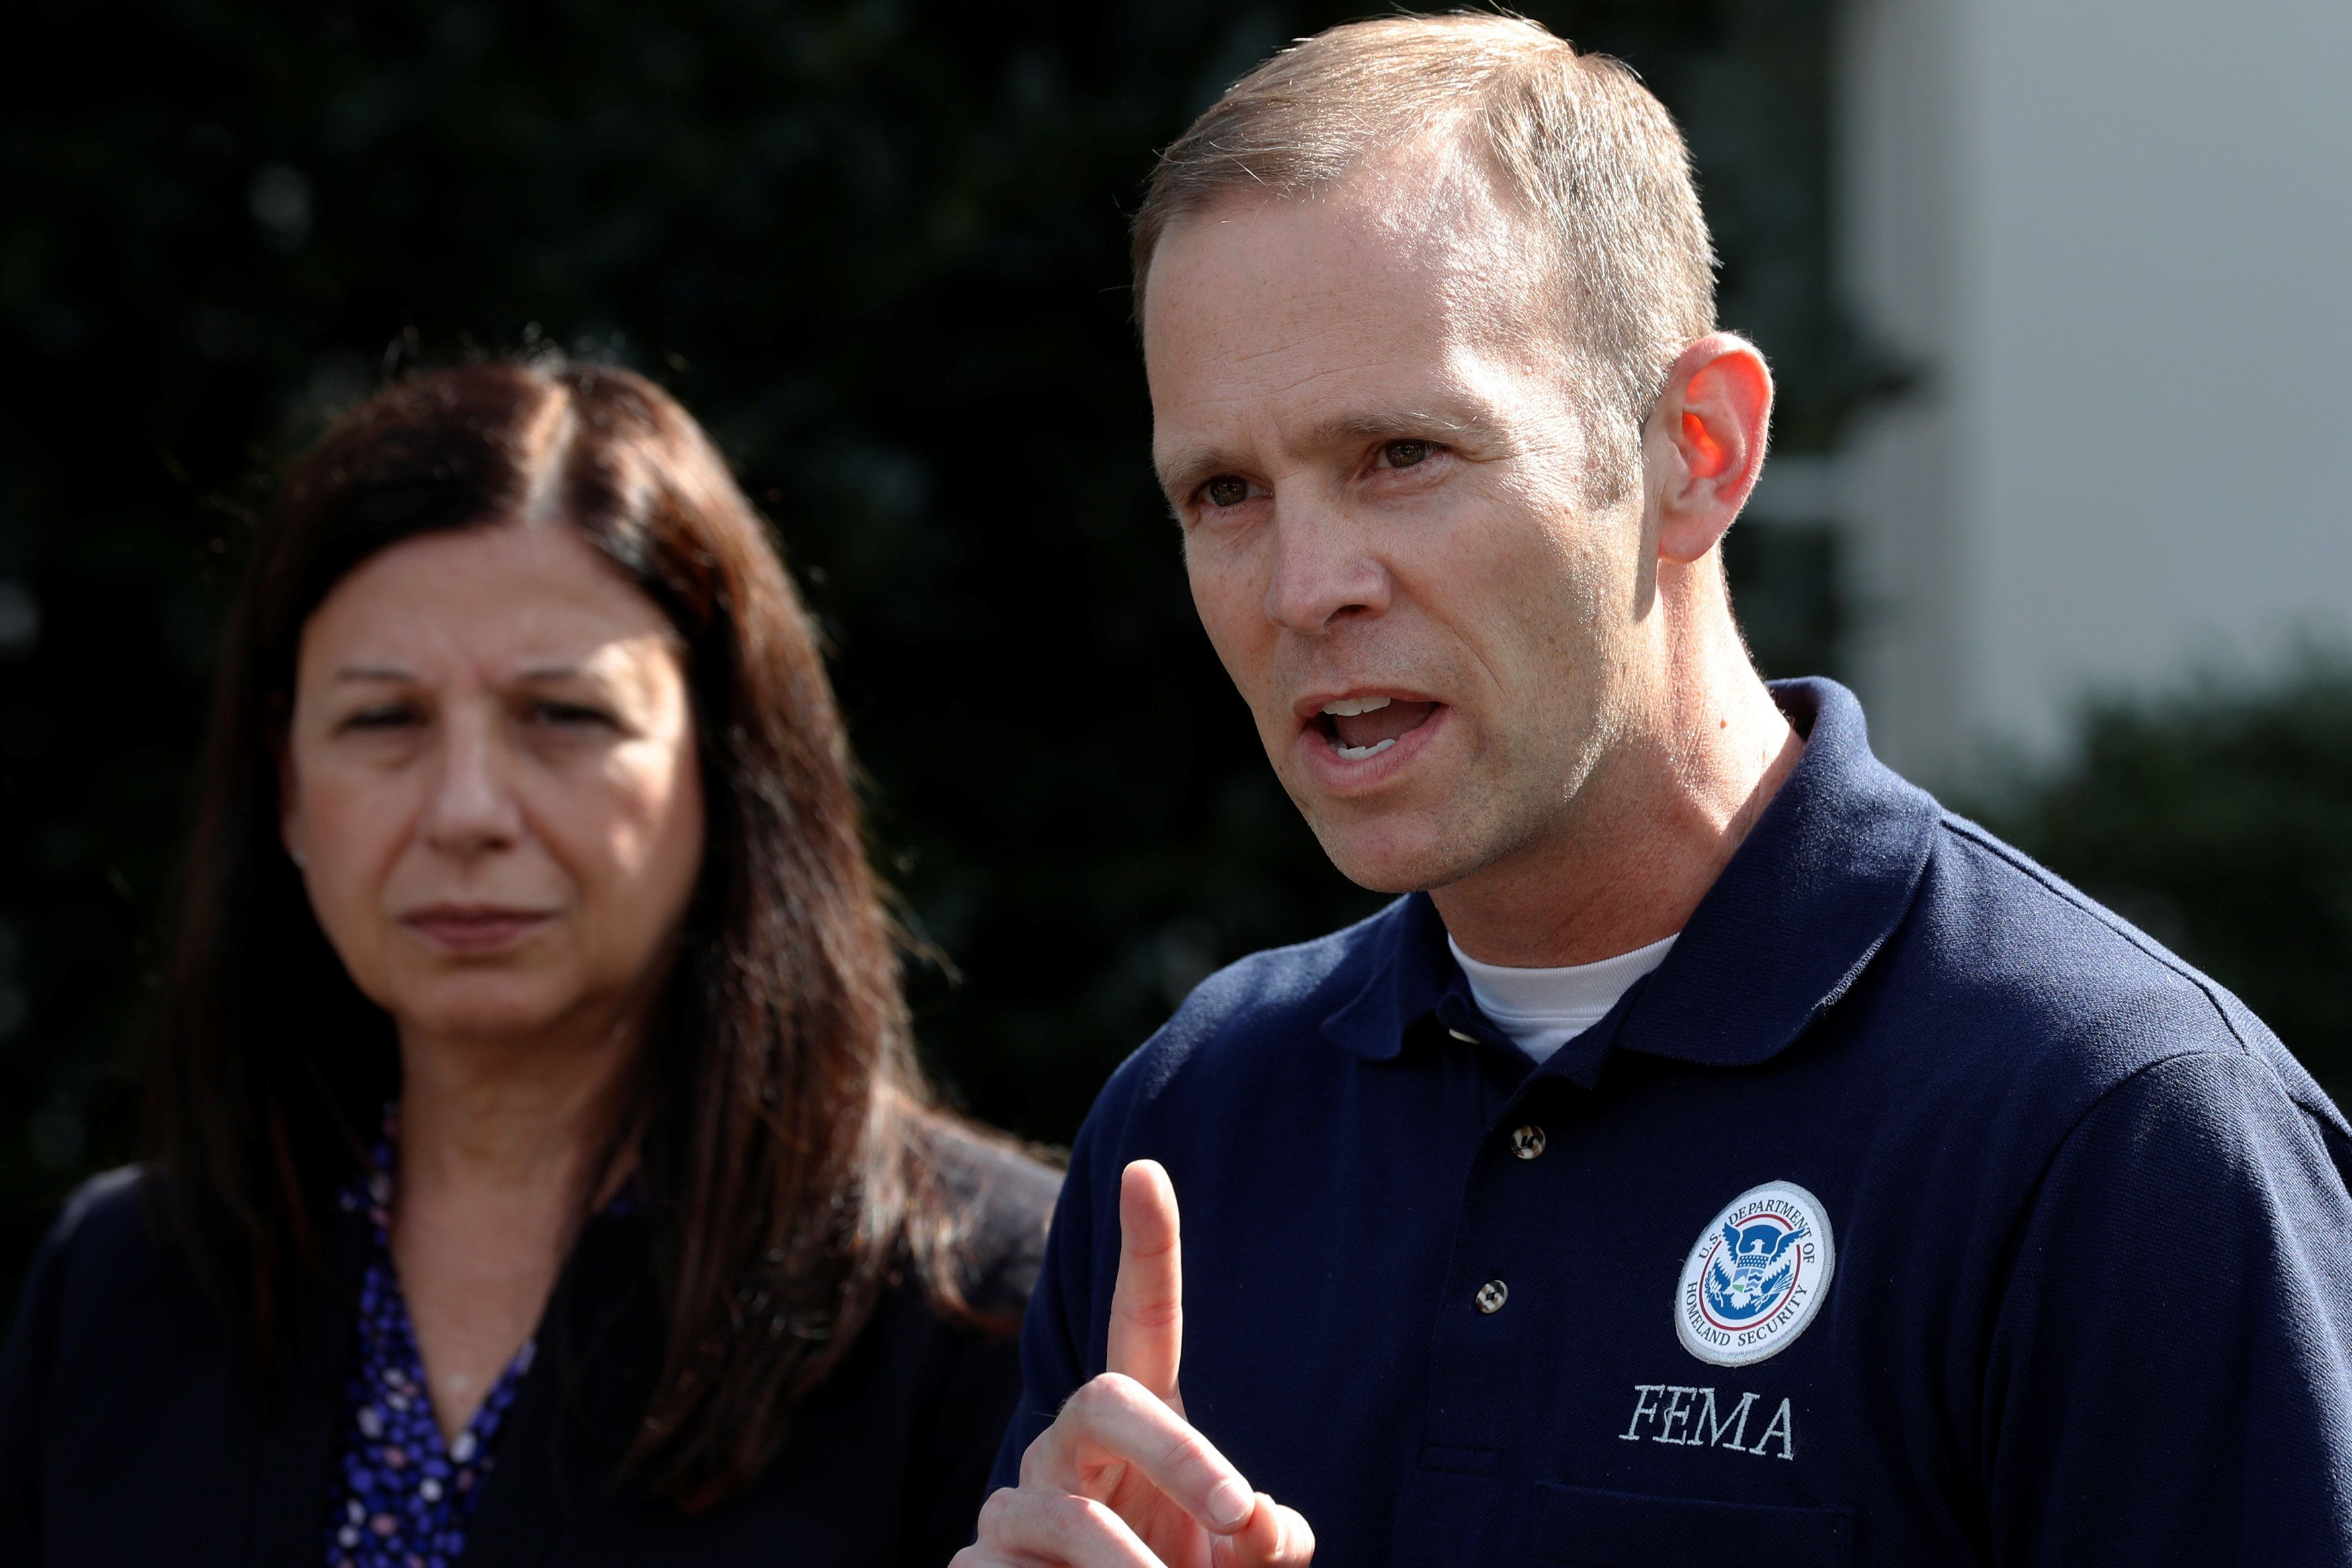 FEMA Administrator Brock Long misused government vehicles and staff on more than 40 occasions, according to a Department